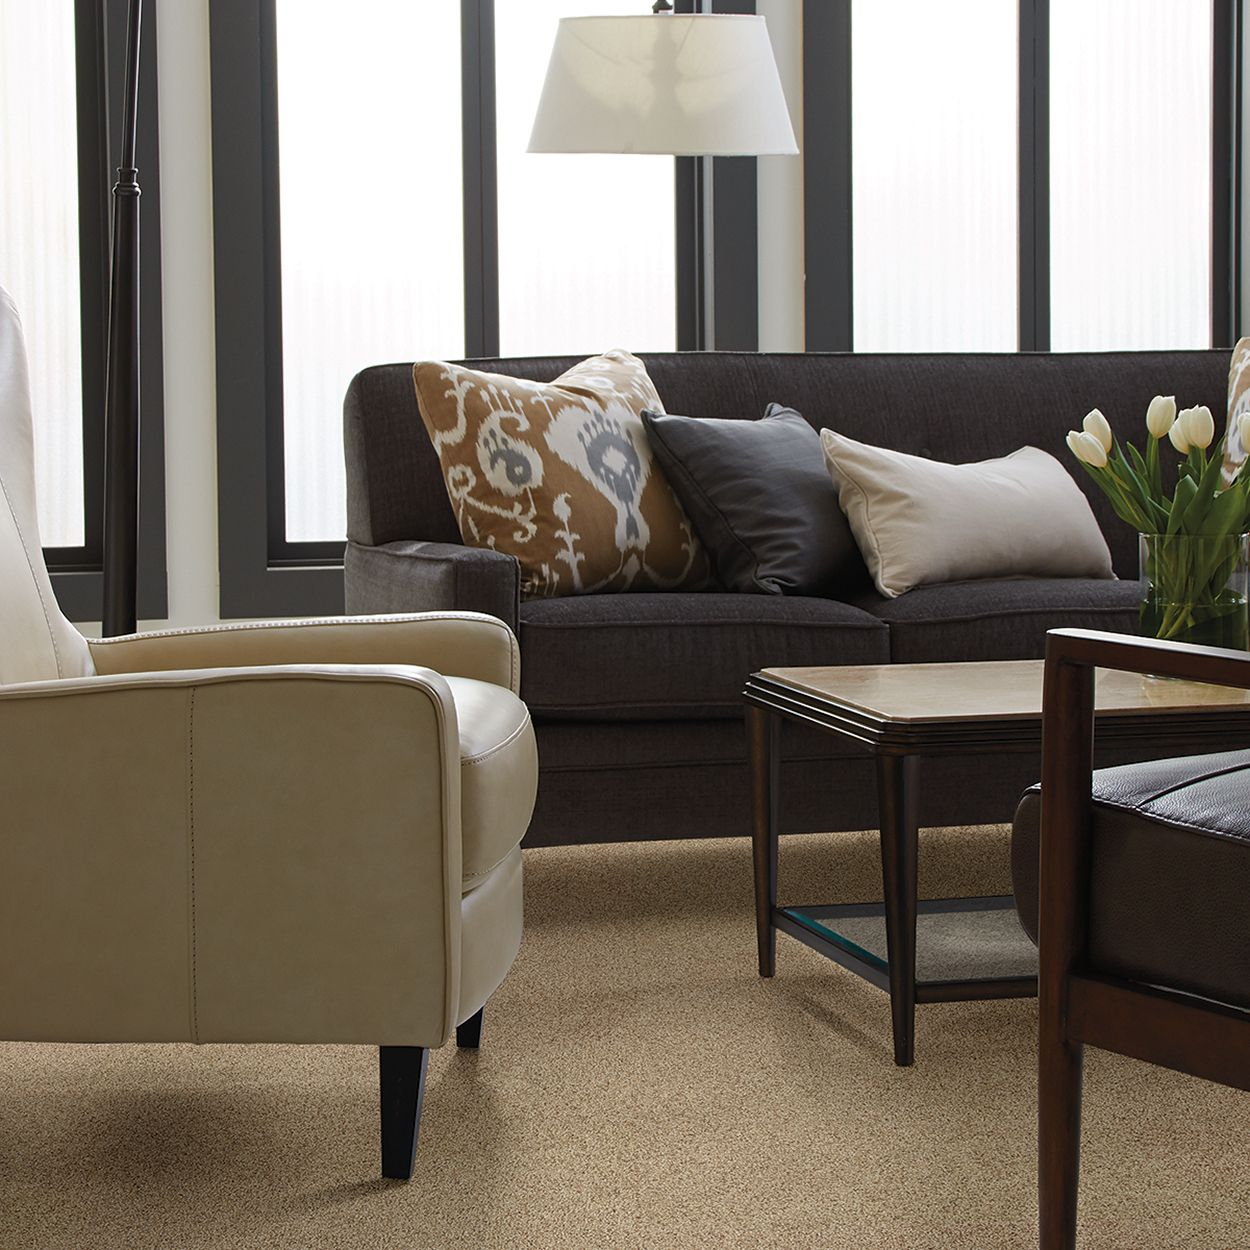 Tigressa Carpet in the style Coral Reef Accents Textured